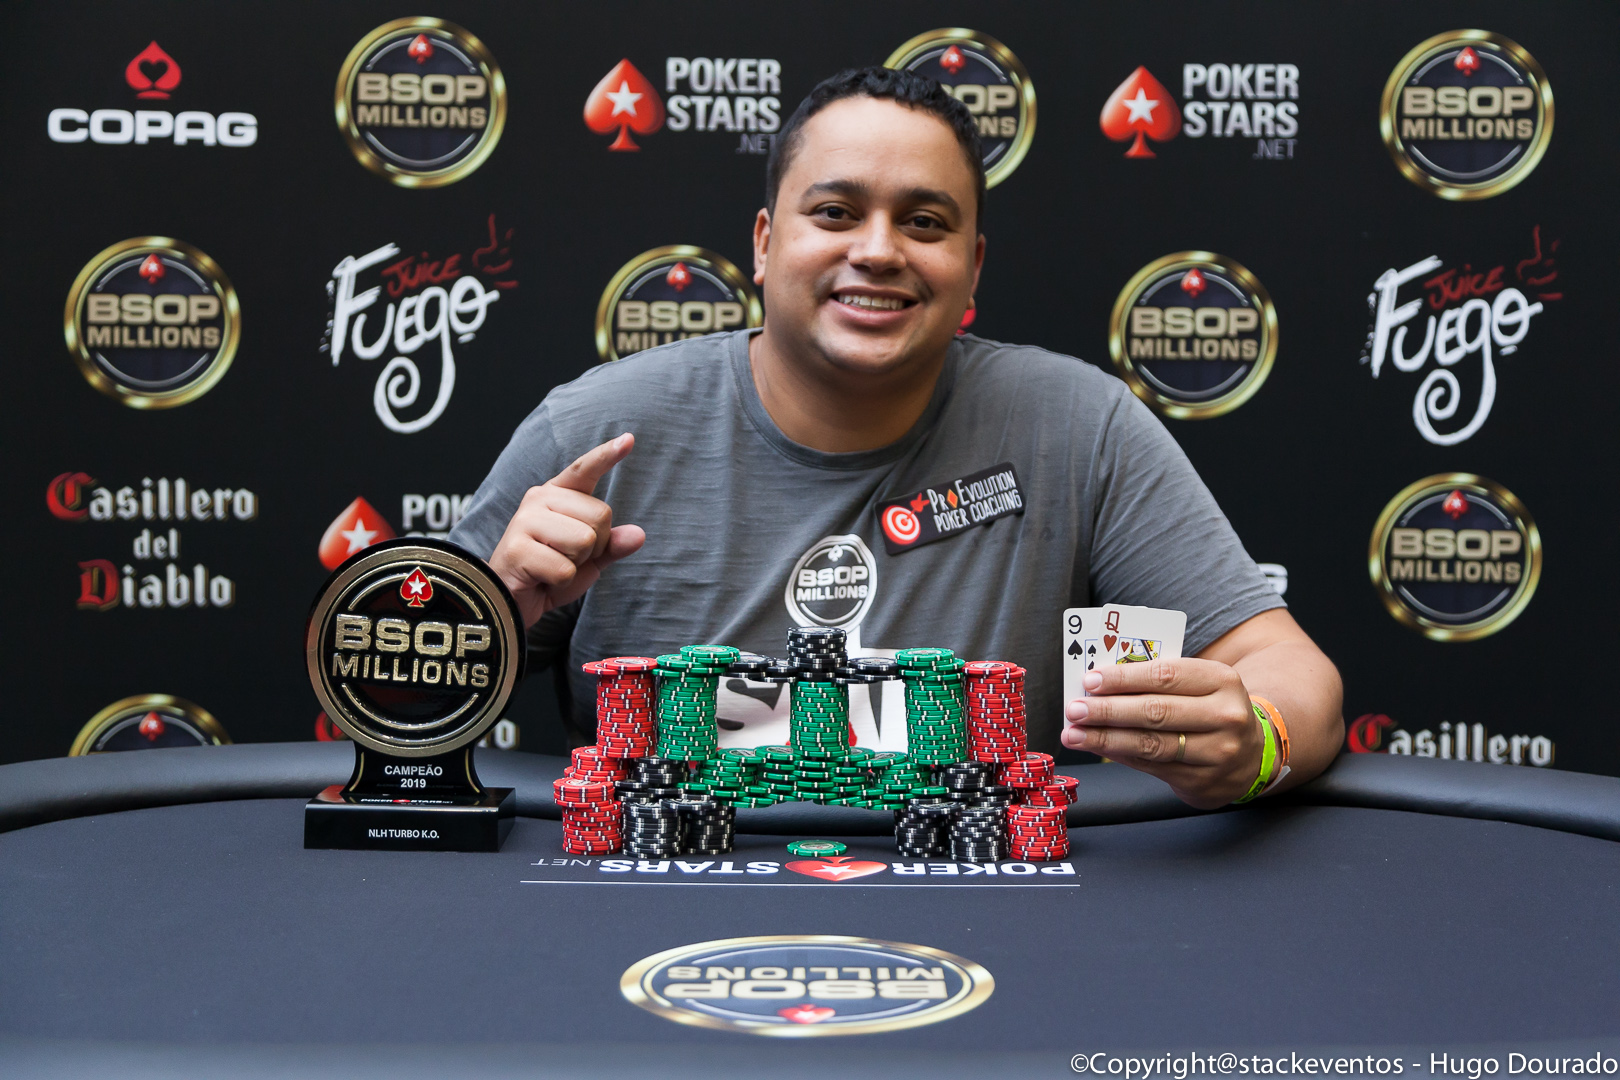 Rafael Moreira campeão do Turbo Knockout do BSOP Millions